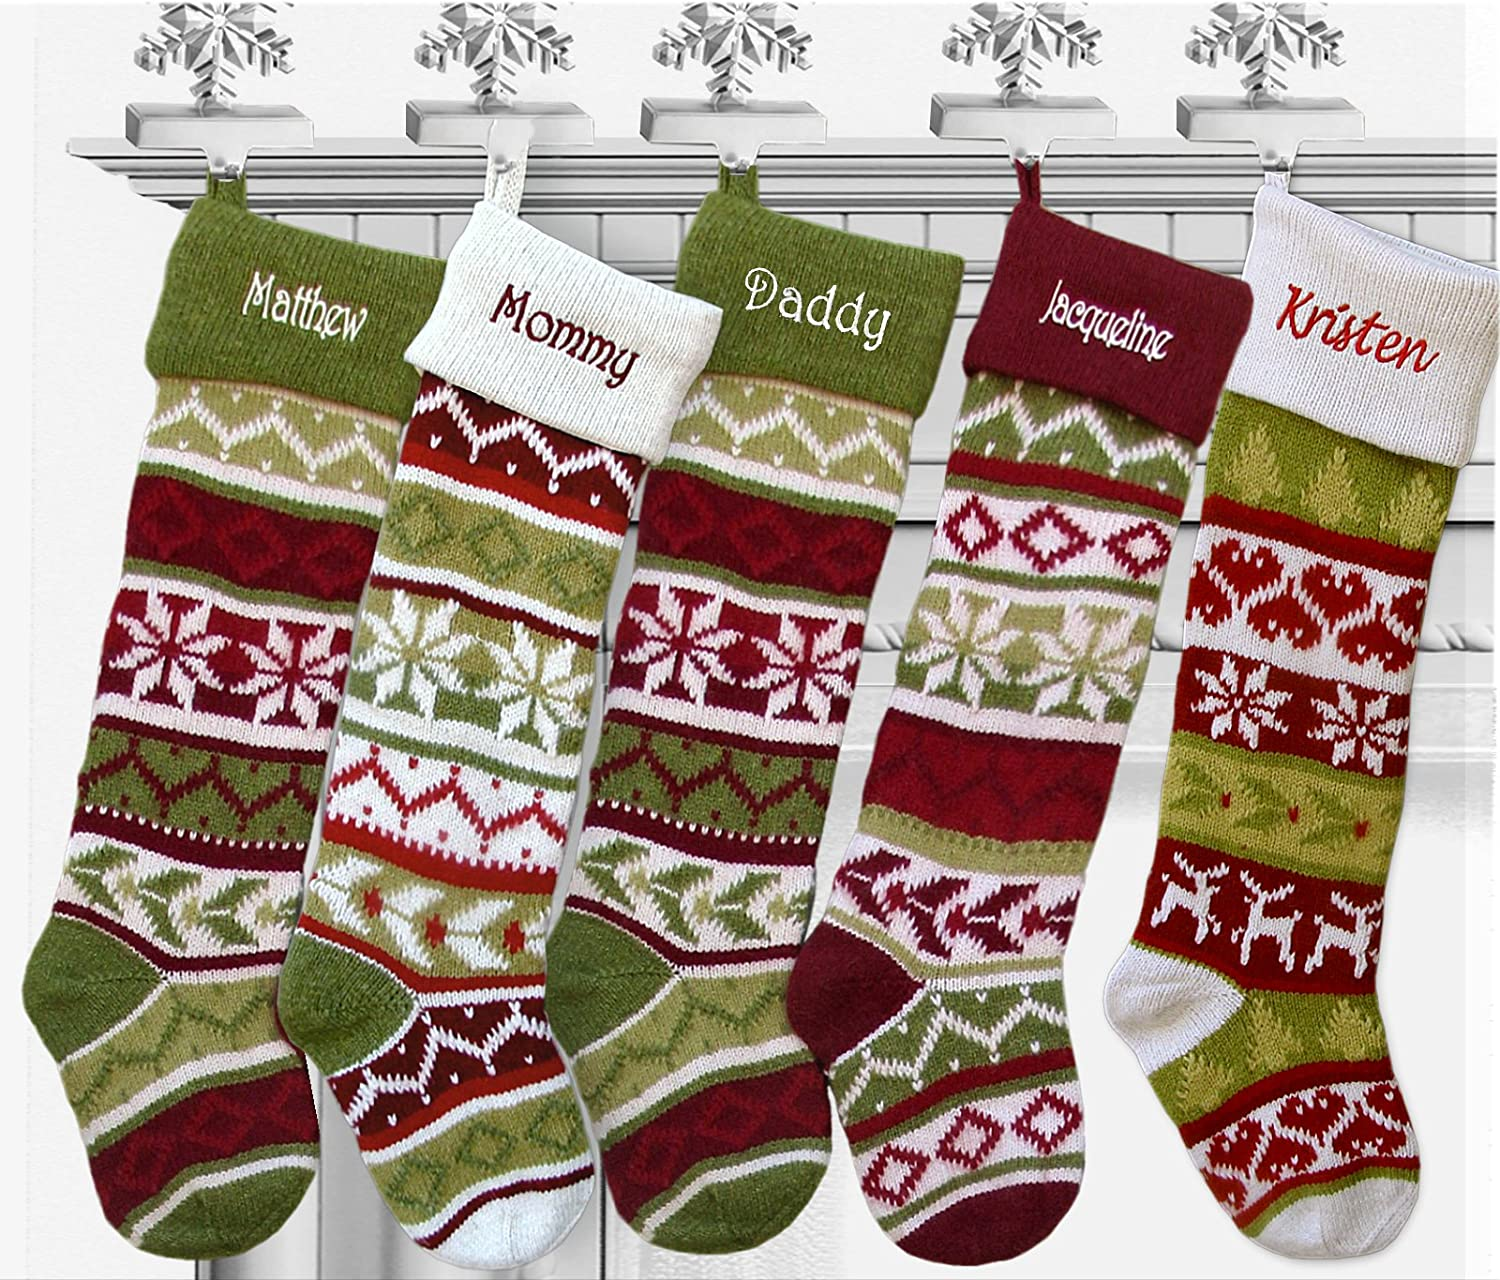 Set of 5 oversized 28 knitted christmas stockings fairisle knit set of 5 oversized 28 knitted christmas stockings fairisle knit monogram choose your designs embroidered with choice of your names amazon bankloansurffo Choice Image